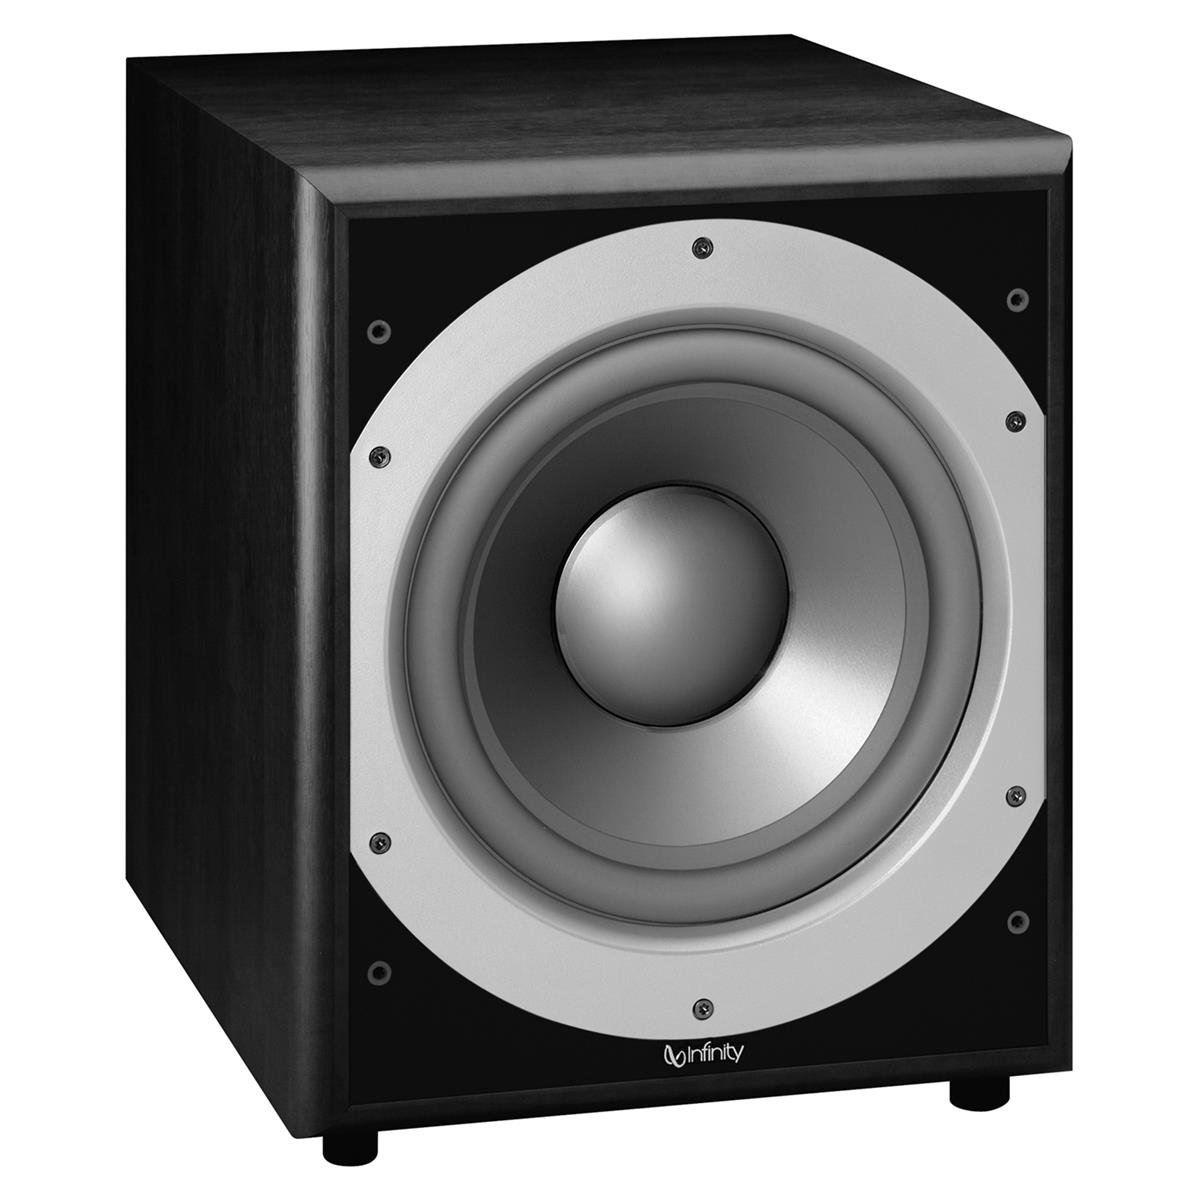 Infinity Primus Ps410 10 Inch 300 Watt Powered Subwoofer 60 Amplifer Circuit Black Home Audio Theater